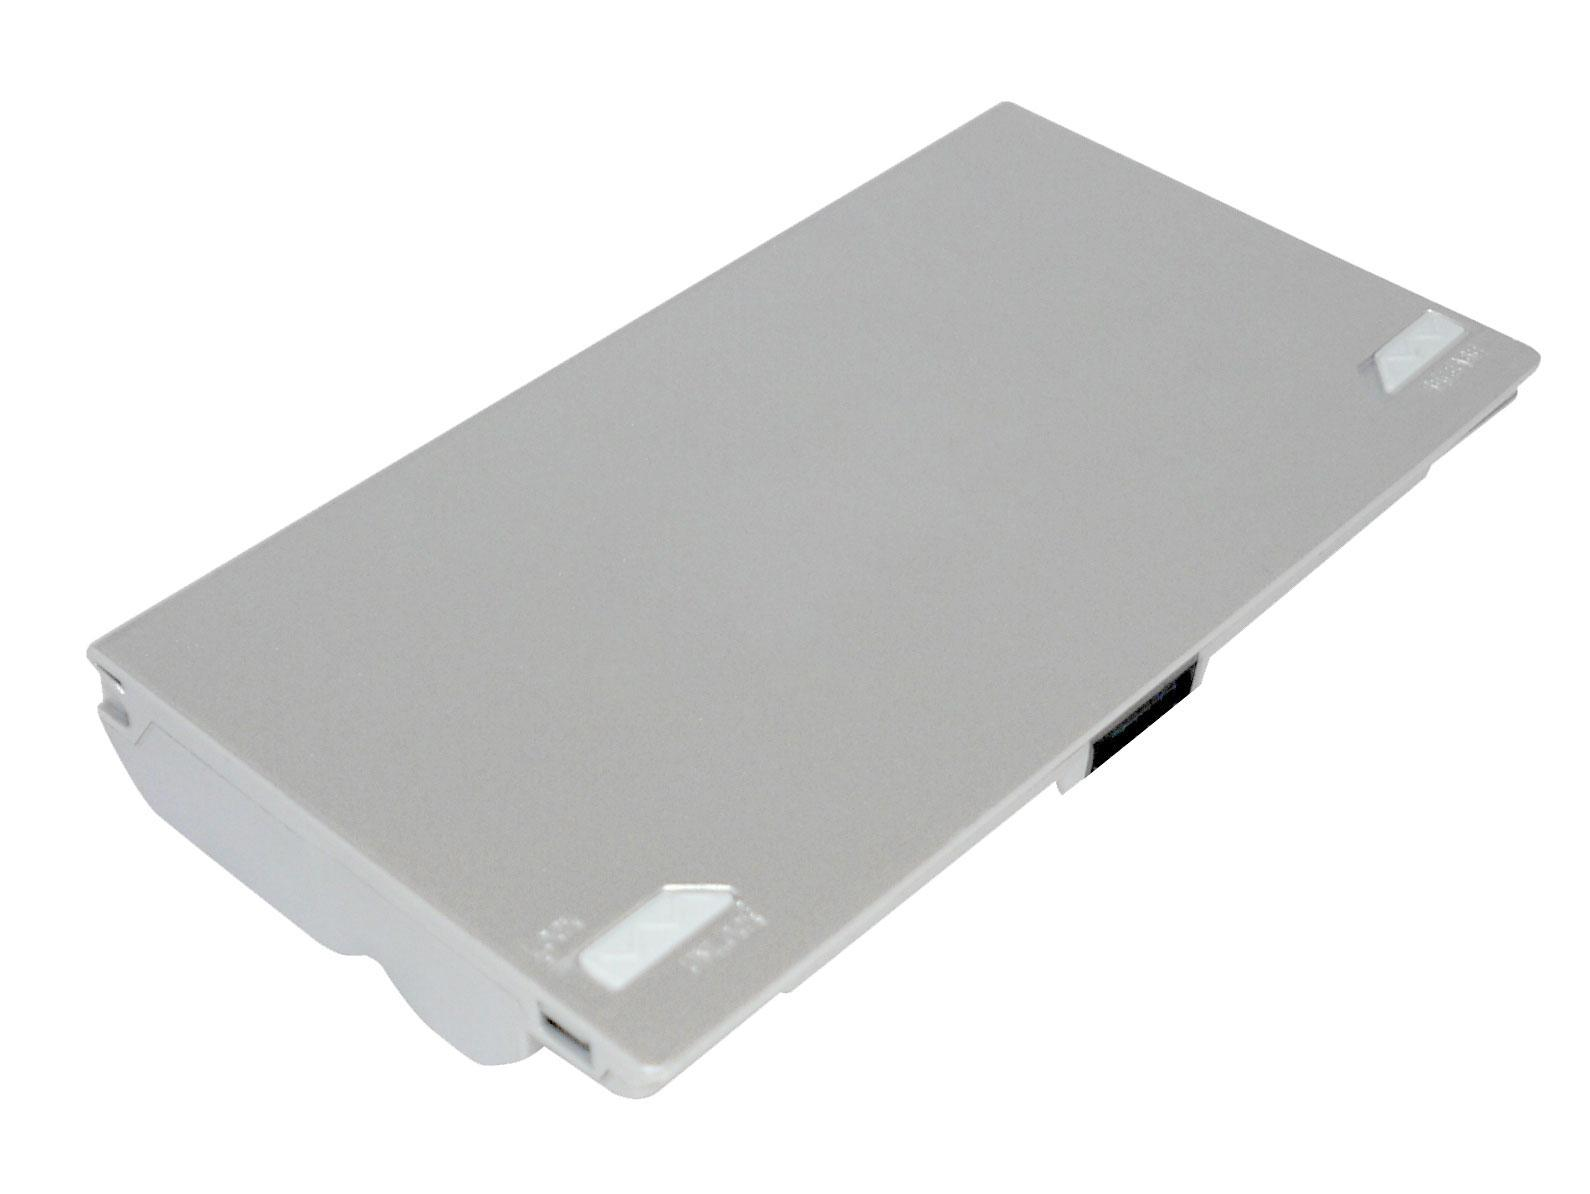 Replacement Sony VAIO VGN-FZ91HS Battery